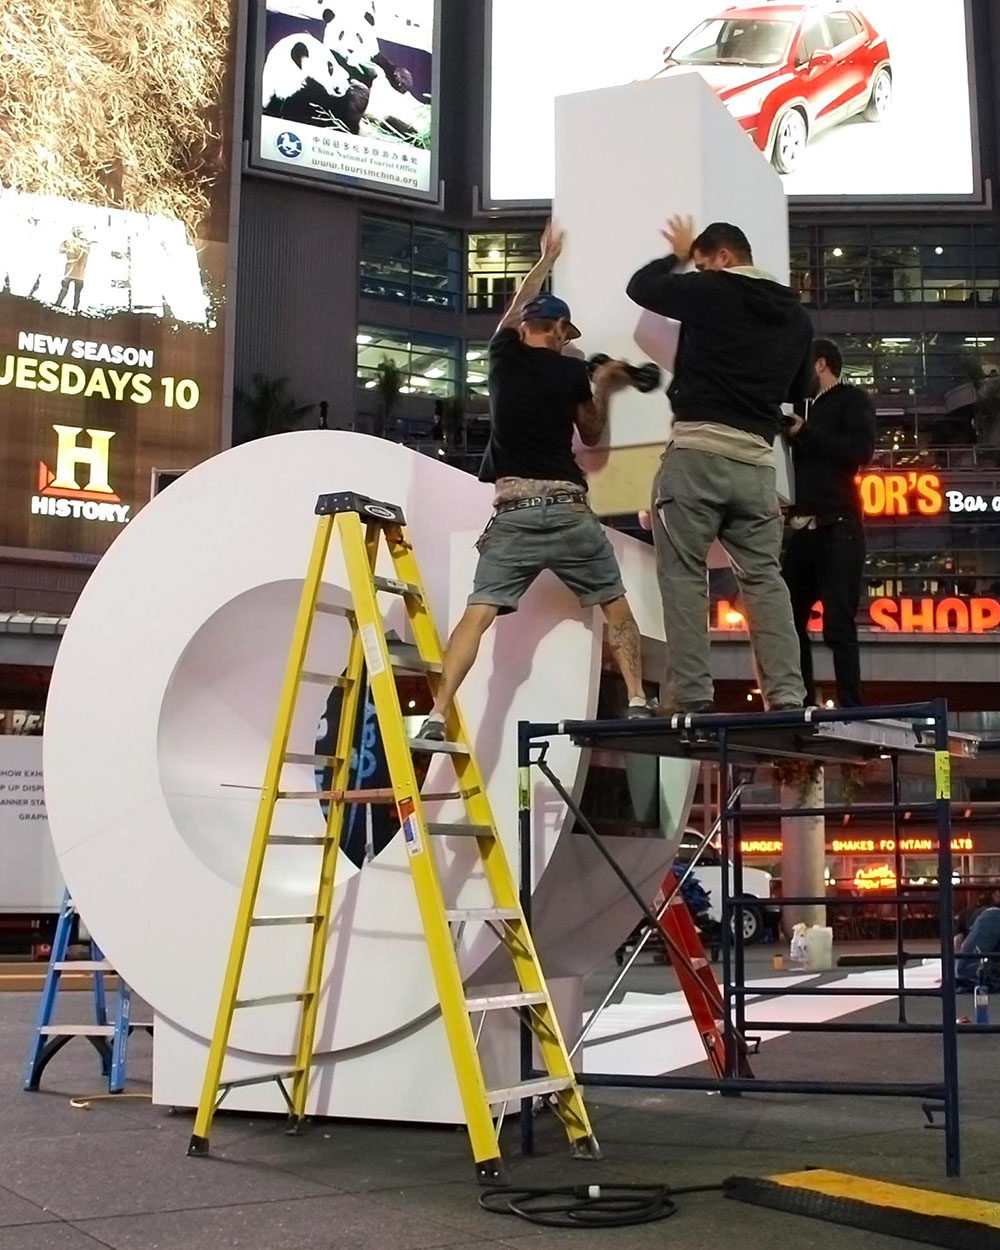 Set up of interactive advertising installation.